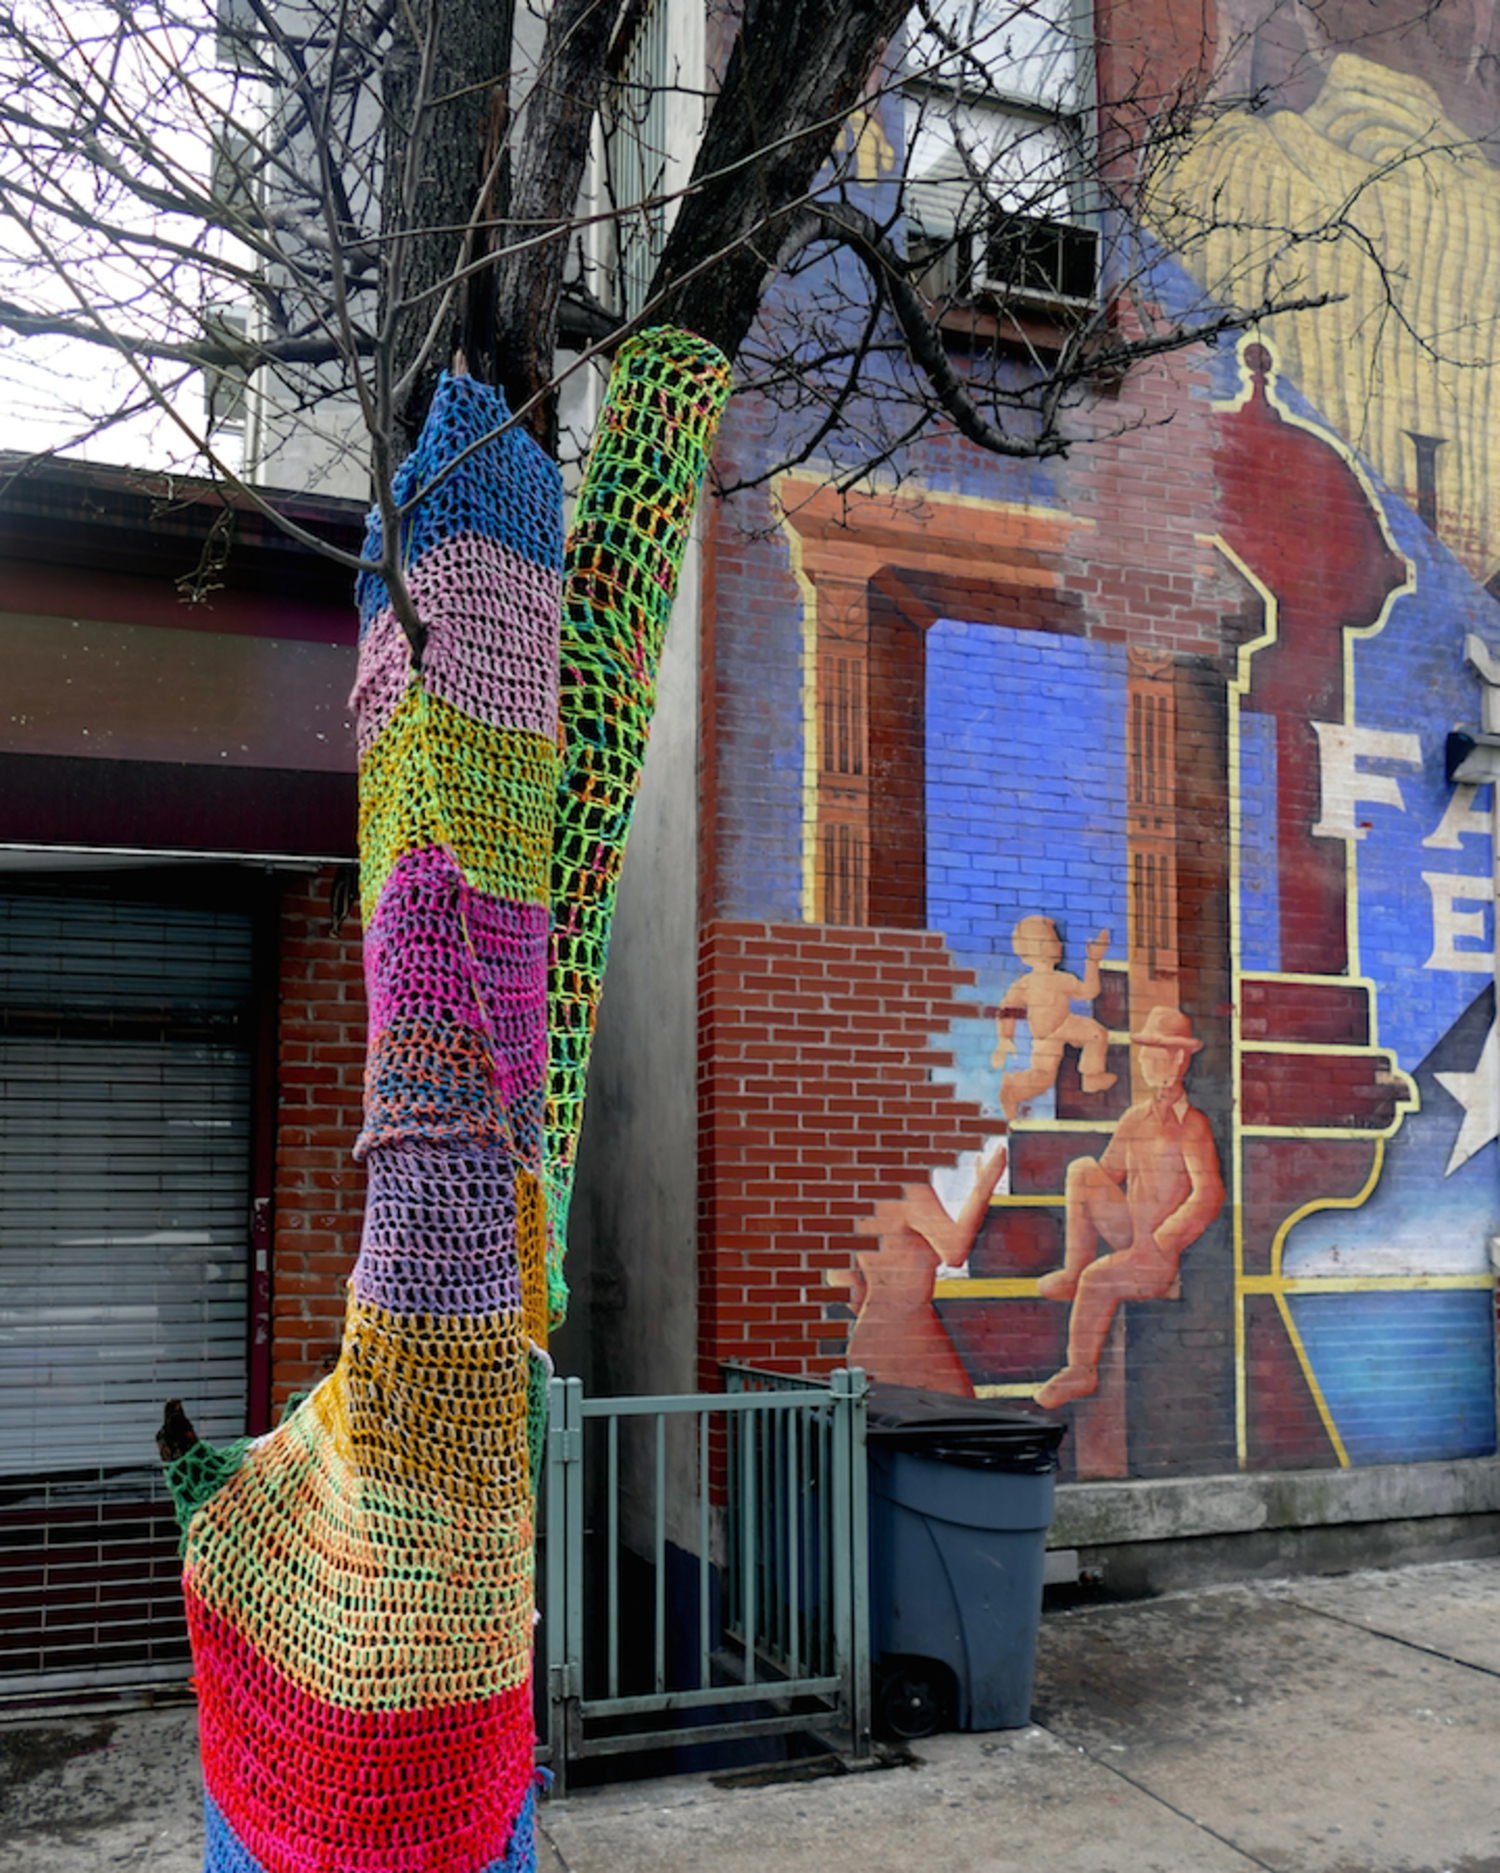 East Harlem resident Naomi RAG has continued to yarn bomb her neighborhood, enhancing it with color, warmth and intrigue.